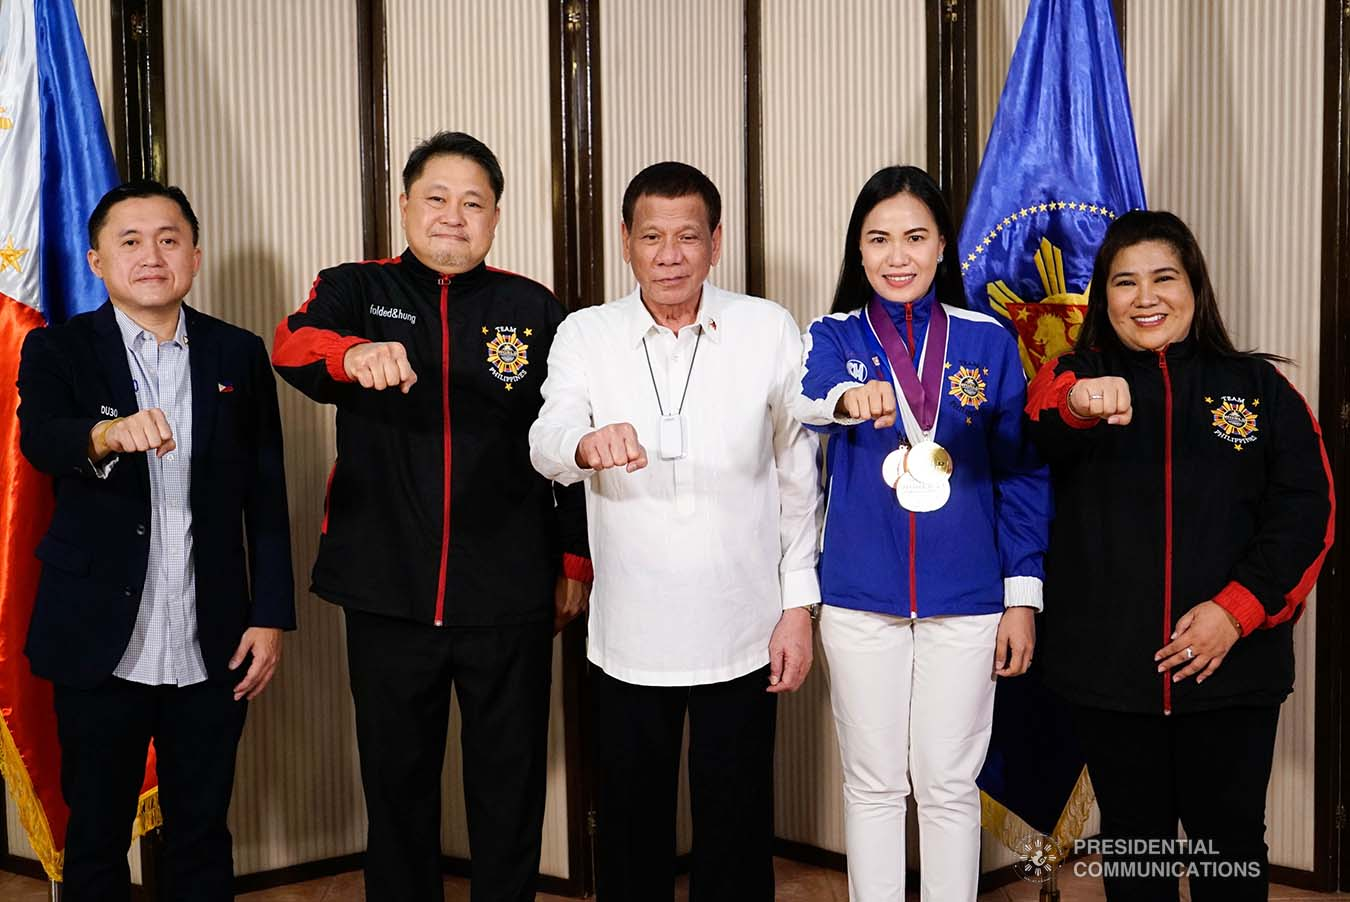 """President Rodrigo Roa Duterte strikes his signature pose with World Championships of Performing Arts (WCOPA) medalist Joanna Miranda during their meeting at the Malago Clubhouse in Malacañang on October 16, 2019. Also in the photo are Senate Committee on Sports Chair Senator Christopher """"Bong"""" Go, WCOPA National Director Gerardo Mercado, and Mary Mercado. KING RODRIGUEZ/PRESIDENTIAL PHOTO"""